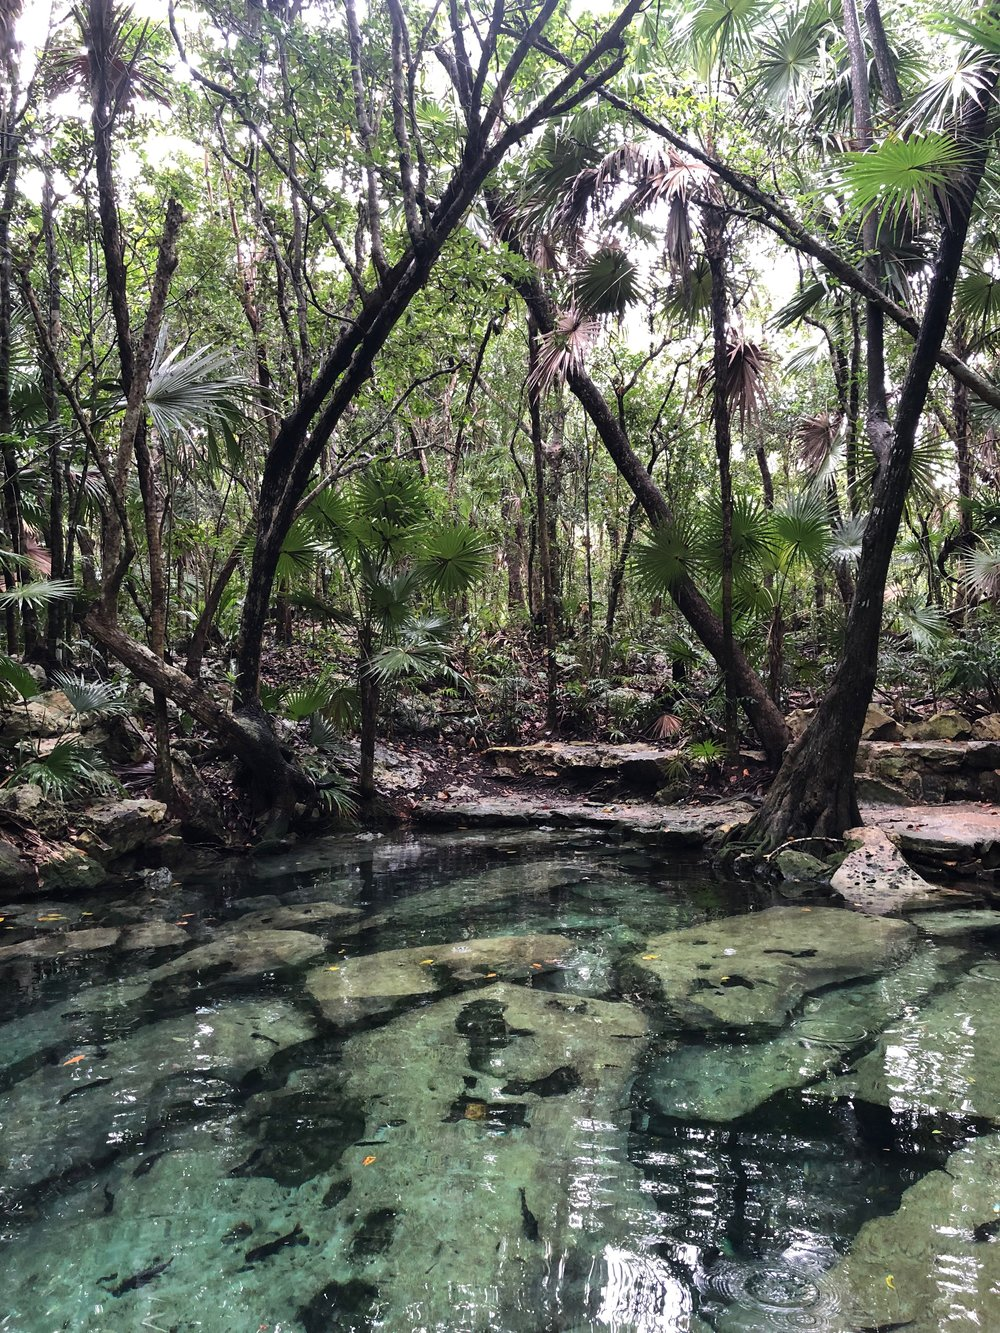 Cenote Azul is a great place to swim in the Yucatan. It's between Tulum and Playa del Carmen.